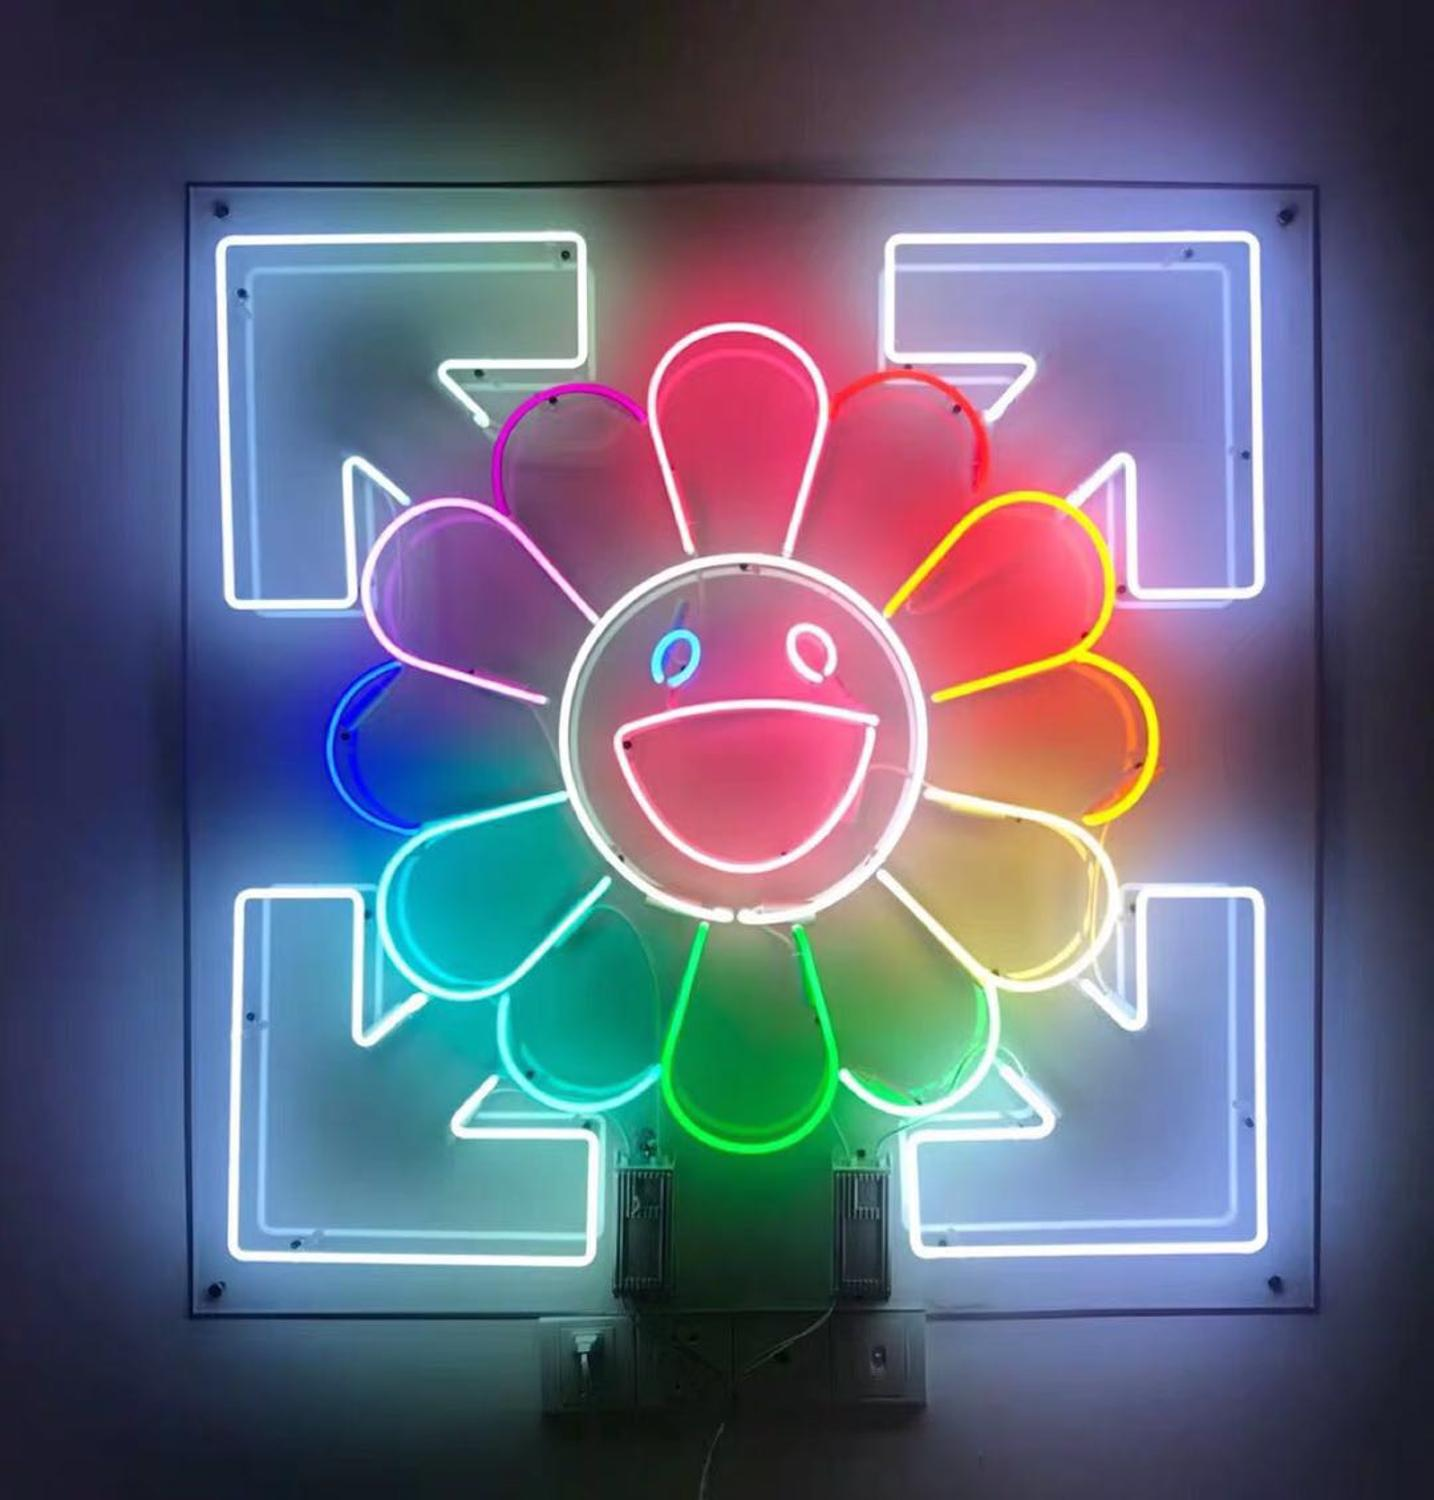 Guangzhou Factory Custom Murakami Takanori The Sun Smile Face Neon Signs Beer Bar Pub Party Store Home Room Wall Decor 50*50cm